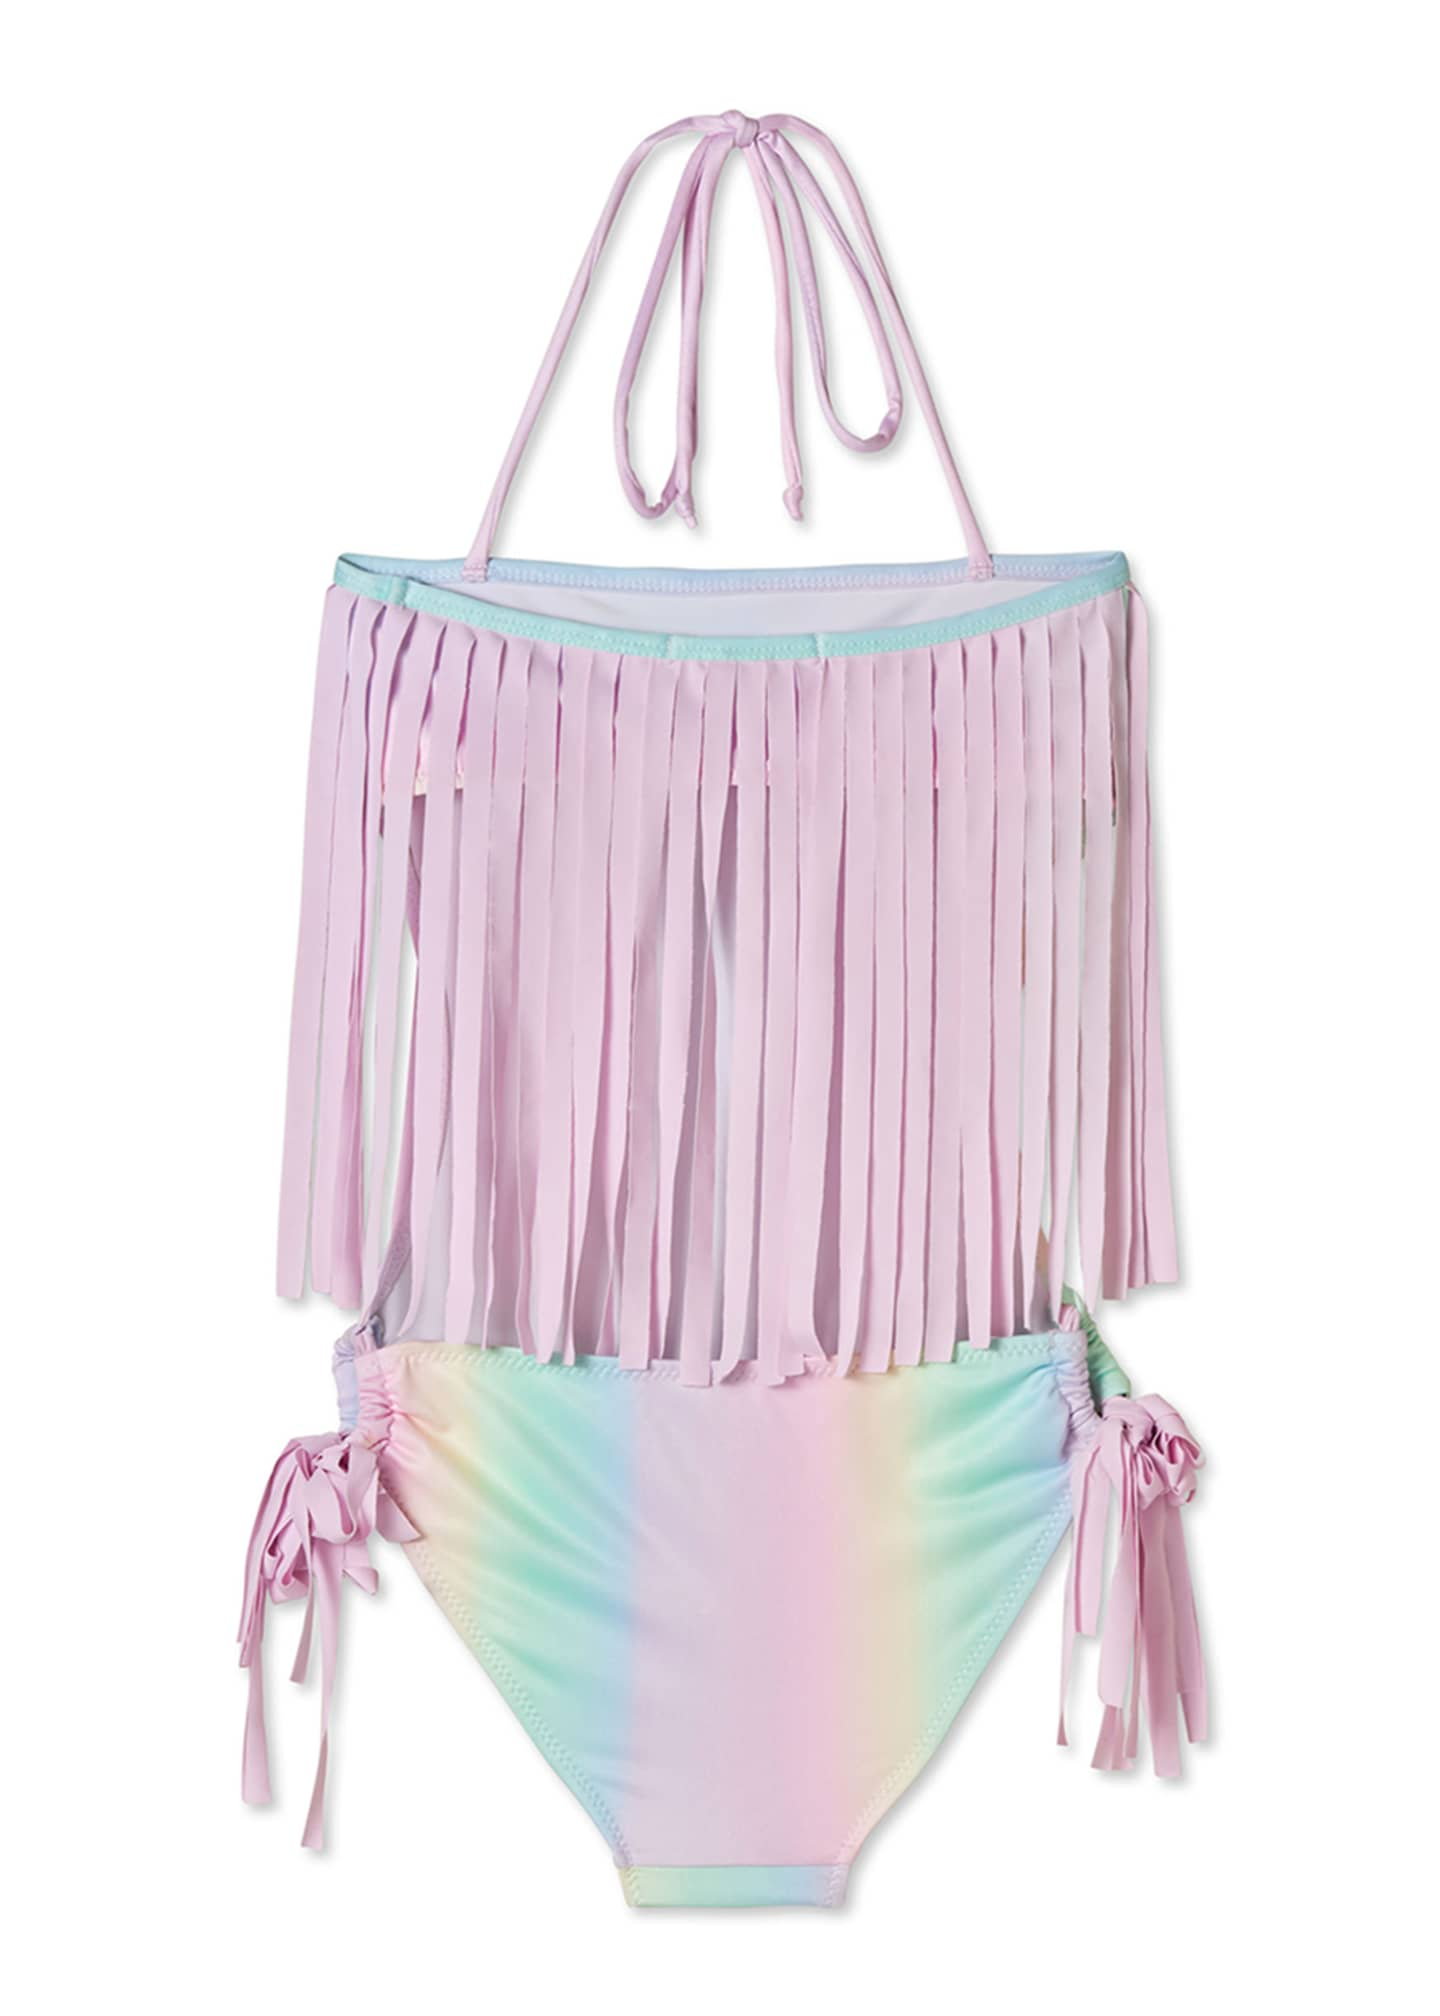 Image 2 of 2: Girls' Rainbow Open-Back One-Piece Swimsuit, 4T-14